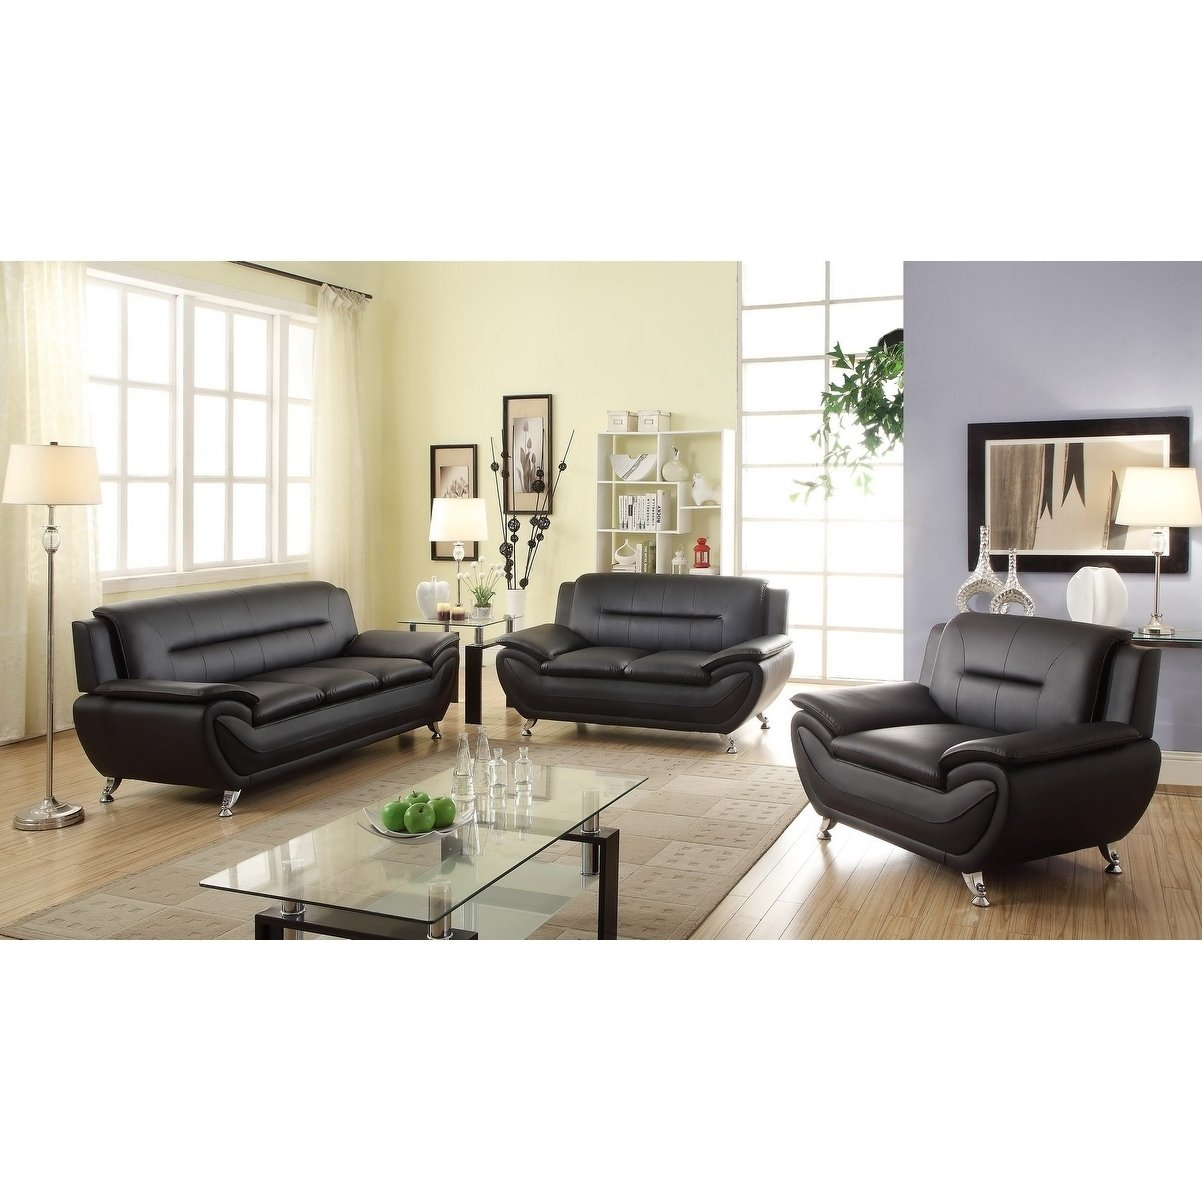 Shop Cosima Faux Leather 3pc Living Room Set Free Shipping Today intended for Faux Leather Living Room Set